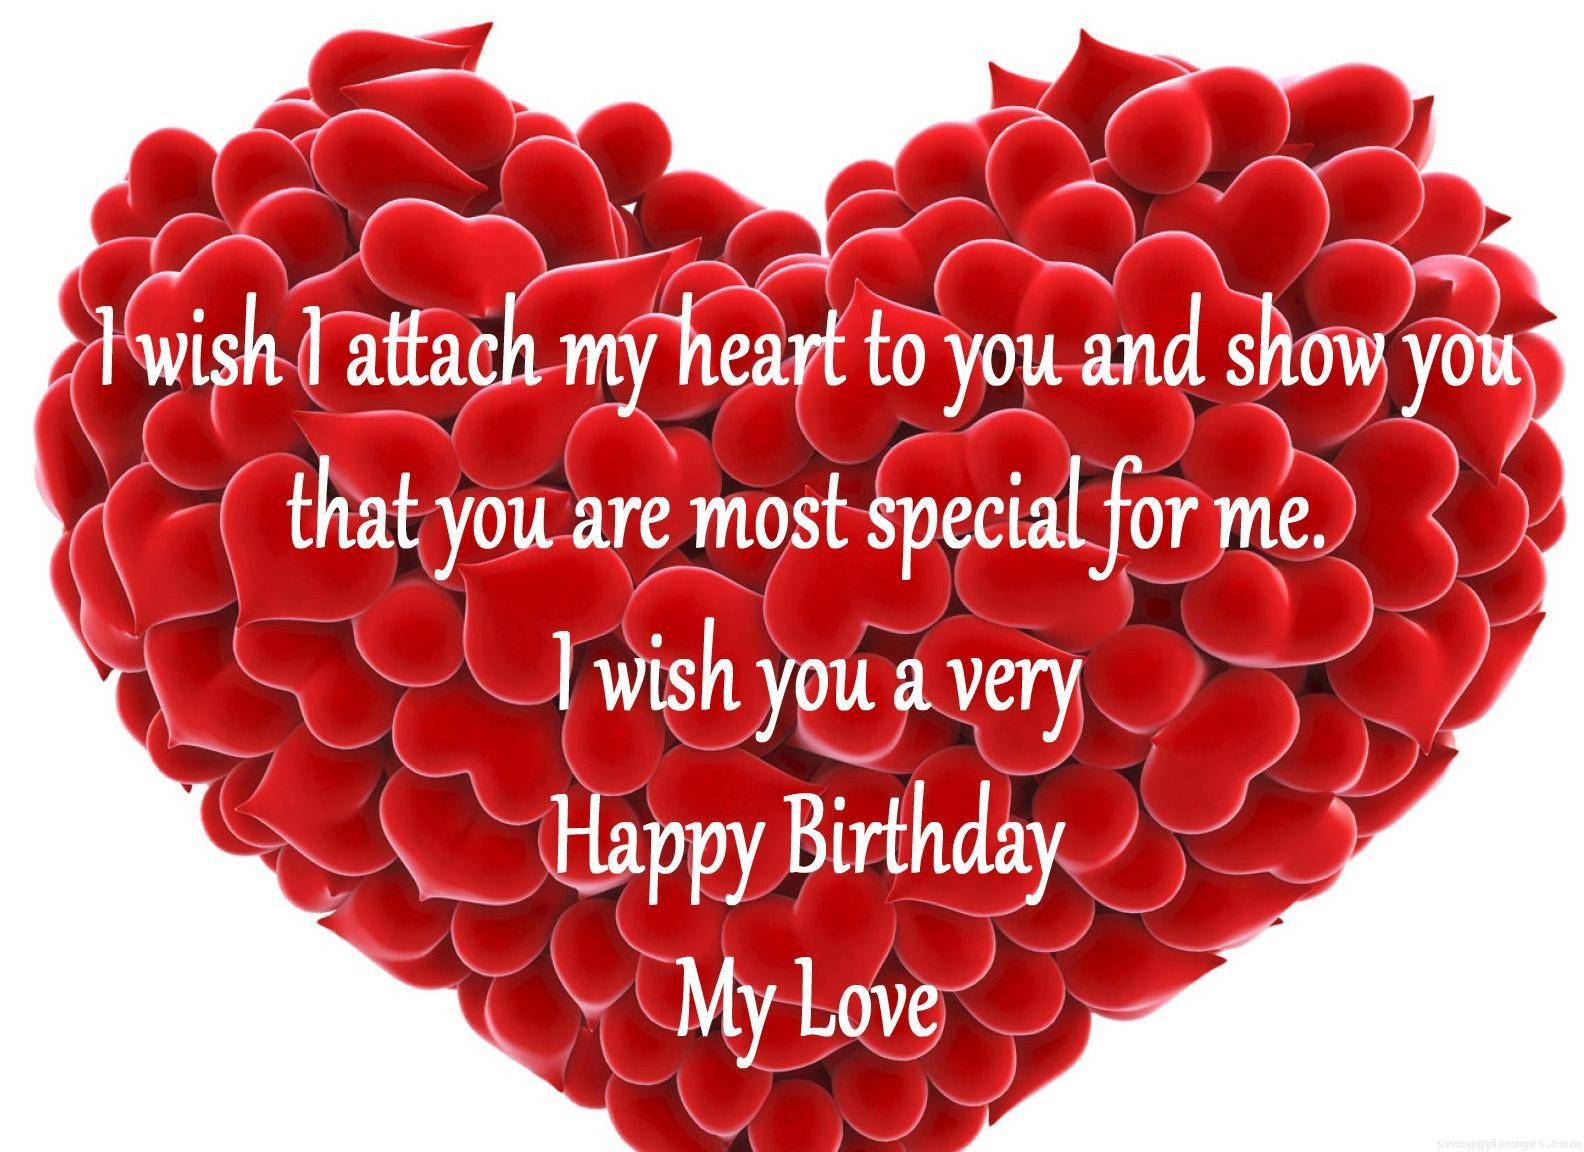 Birthday Hd Wallpapers For Lover – Swaggy Image